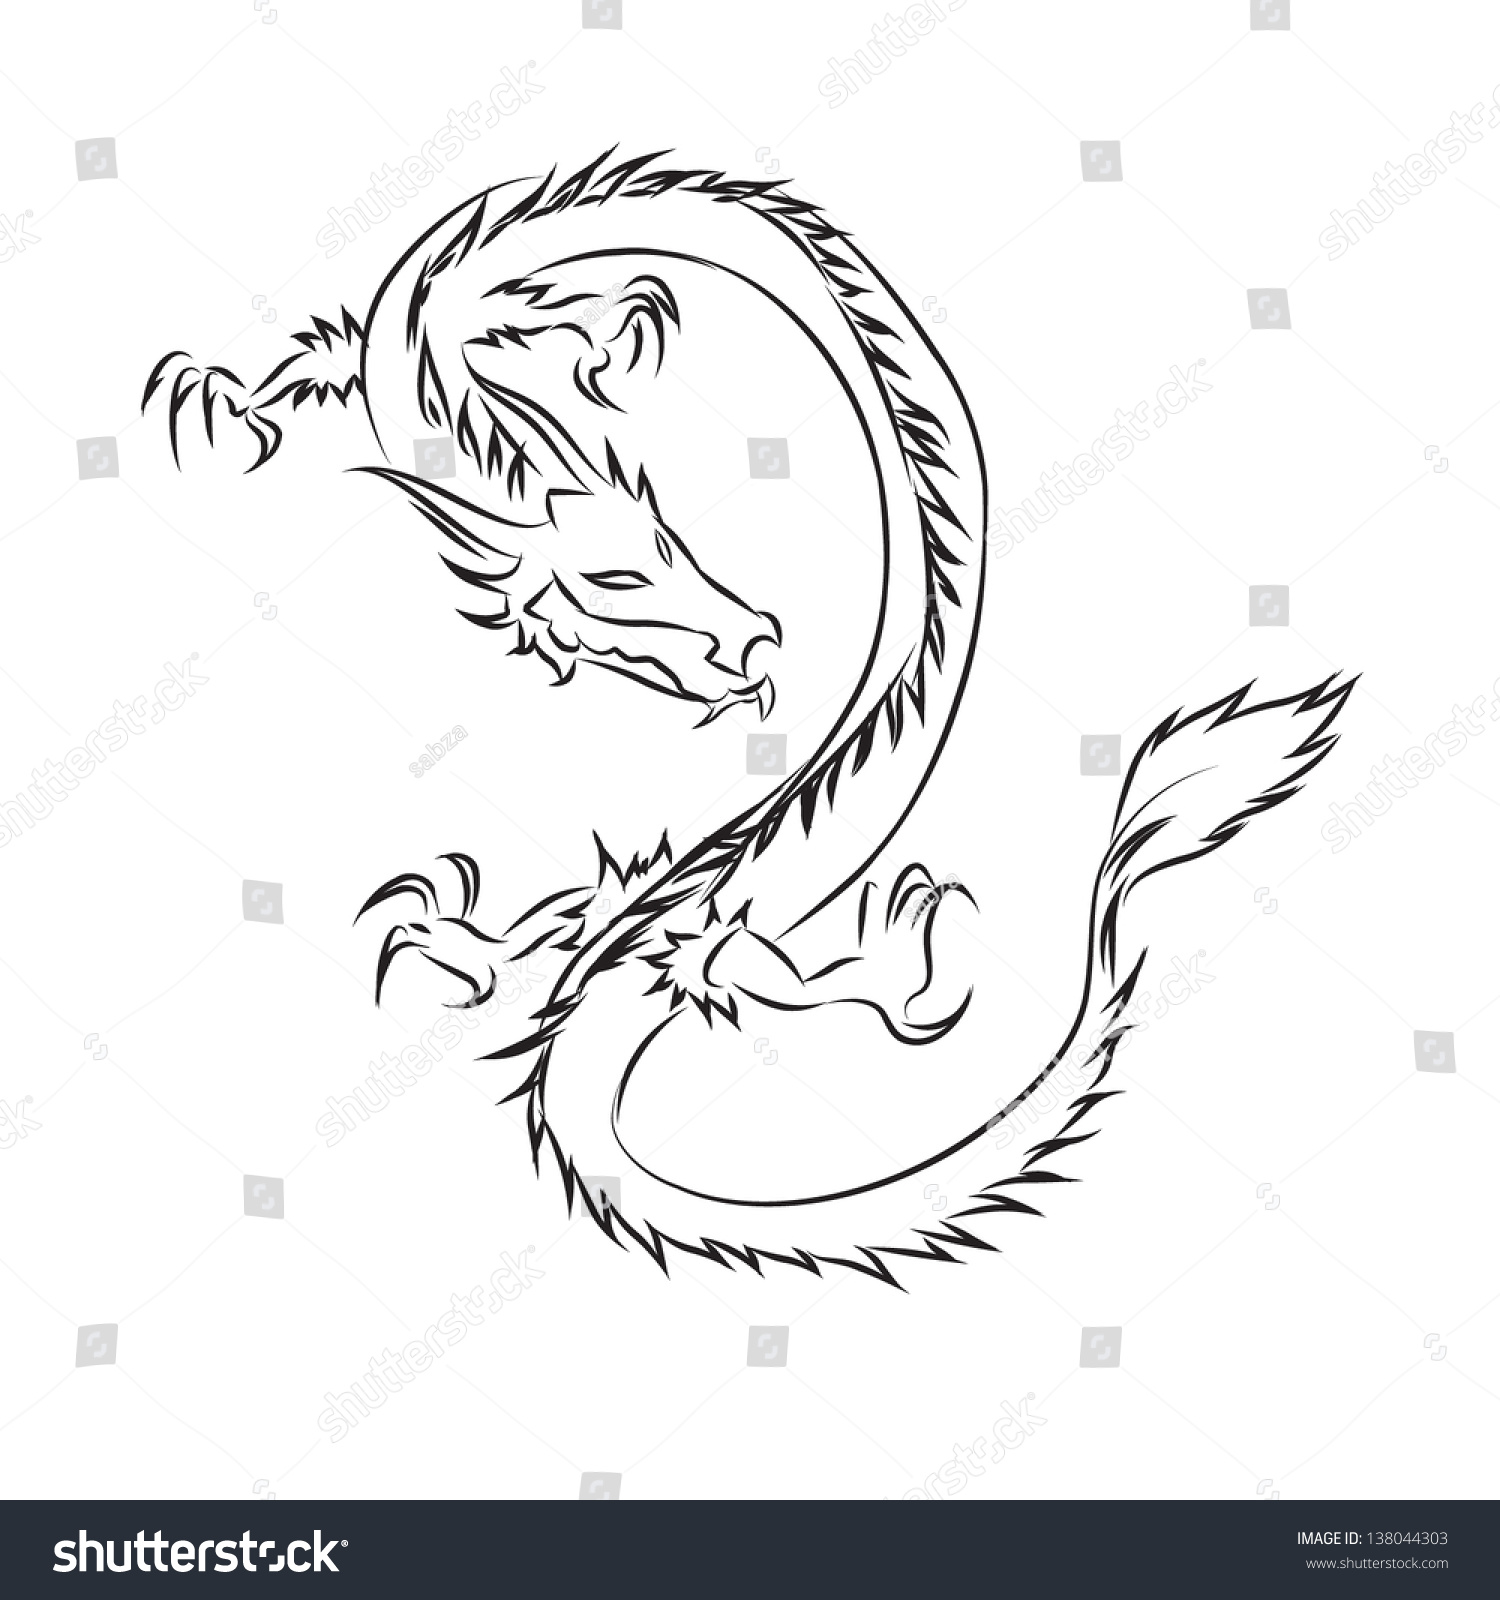 Draw chinese dragonvector illustration stock vector 138044303 draw of chinese dragonvector illustration ccuart Images